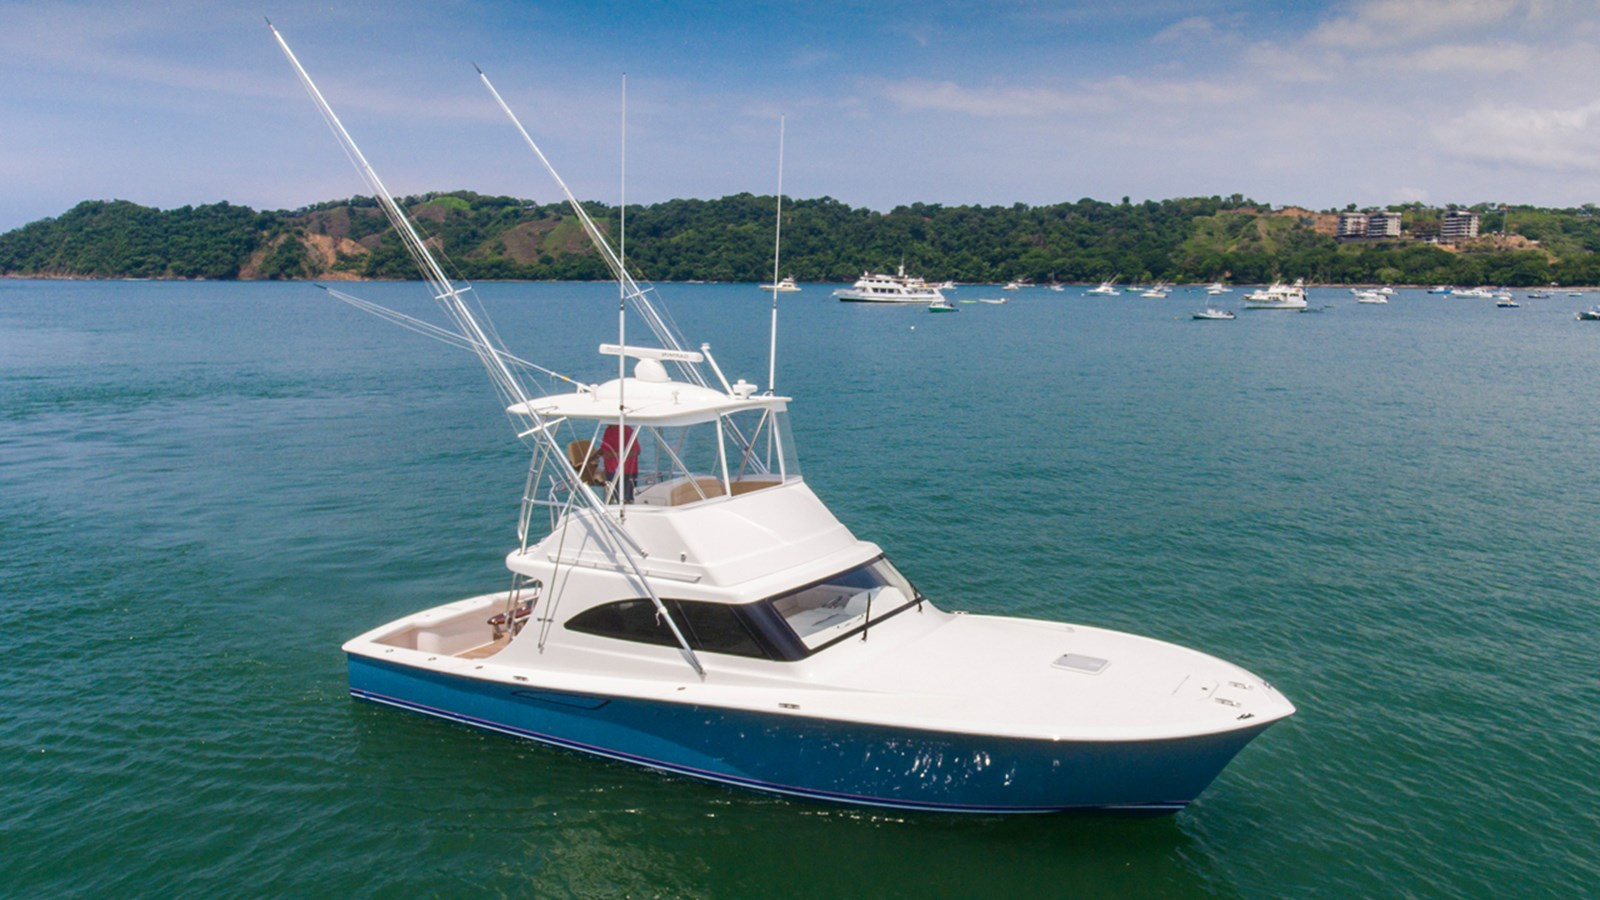 2017 VIKING 37 Billfish (VK37-403) For Sale